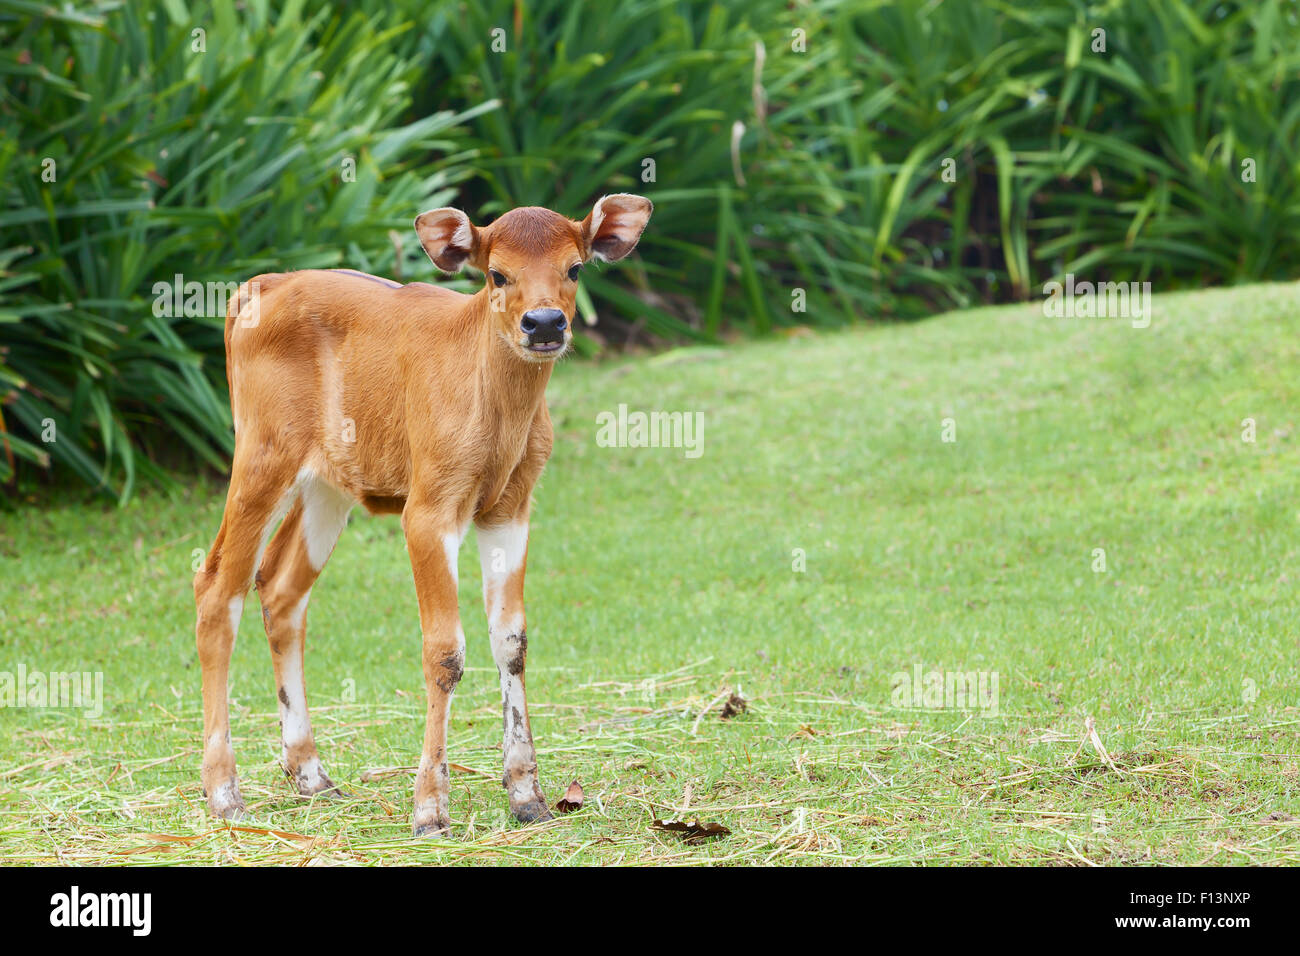 Funny newborn baby cow on the farm stands on green grass and looking around curiously, asian livestocks - Stock Image